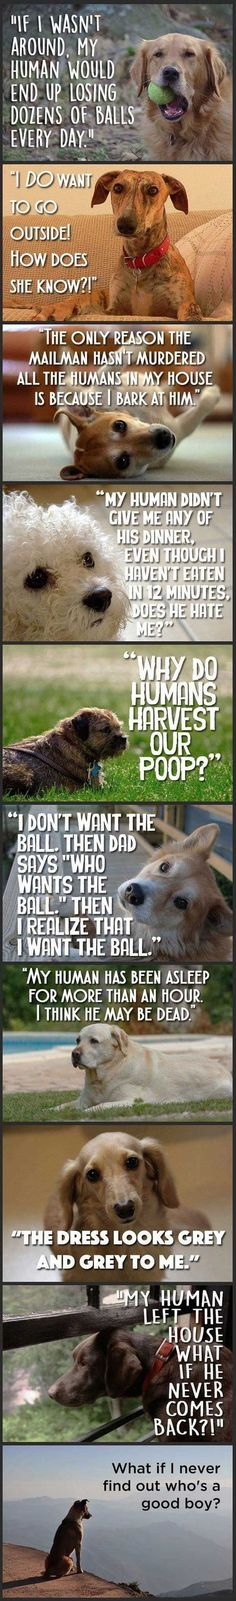 Just Dog Thoughts. [Not true that dogs see only grey! They are like color-blind humans, they see SOME colors, but not others.]